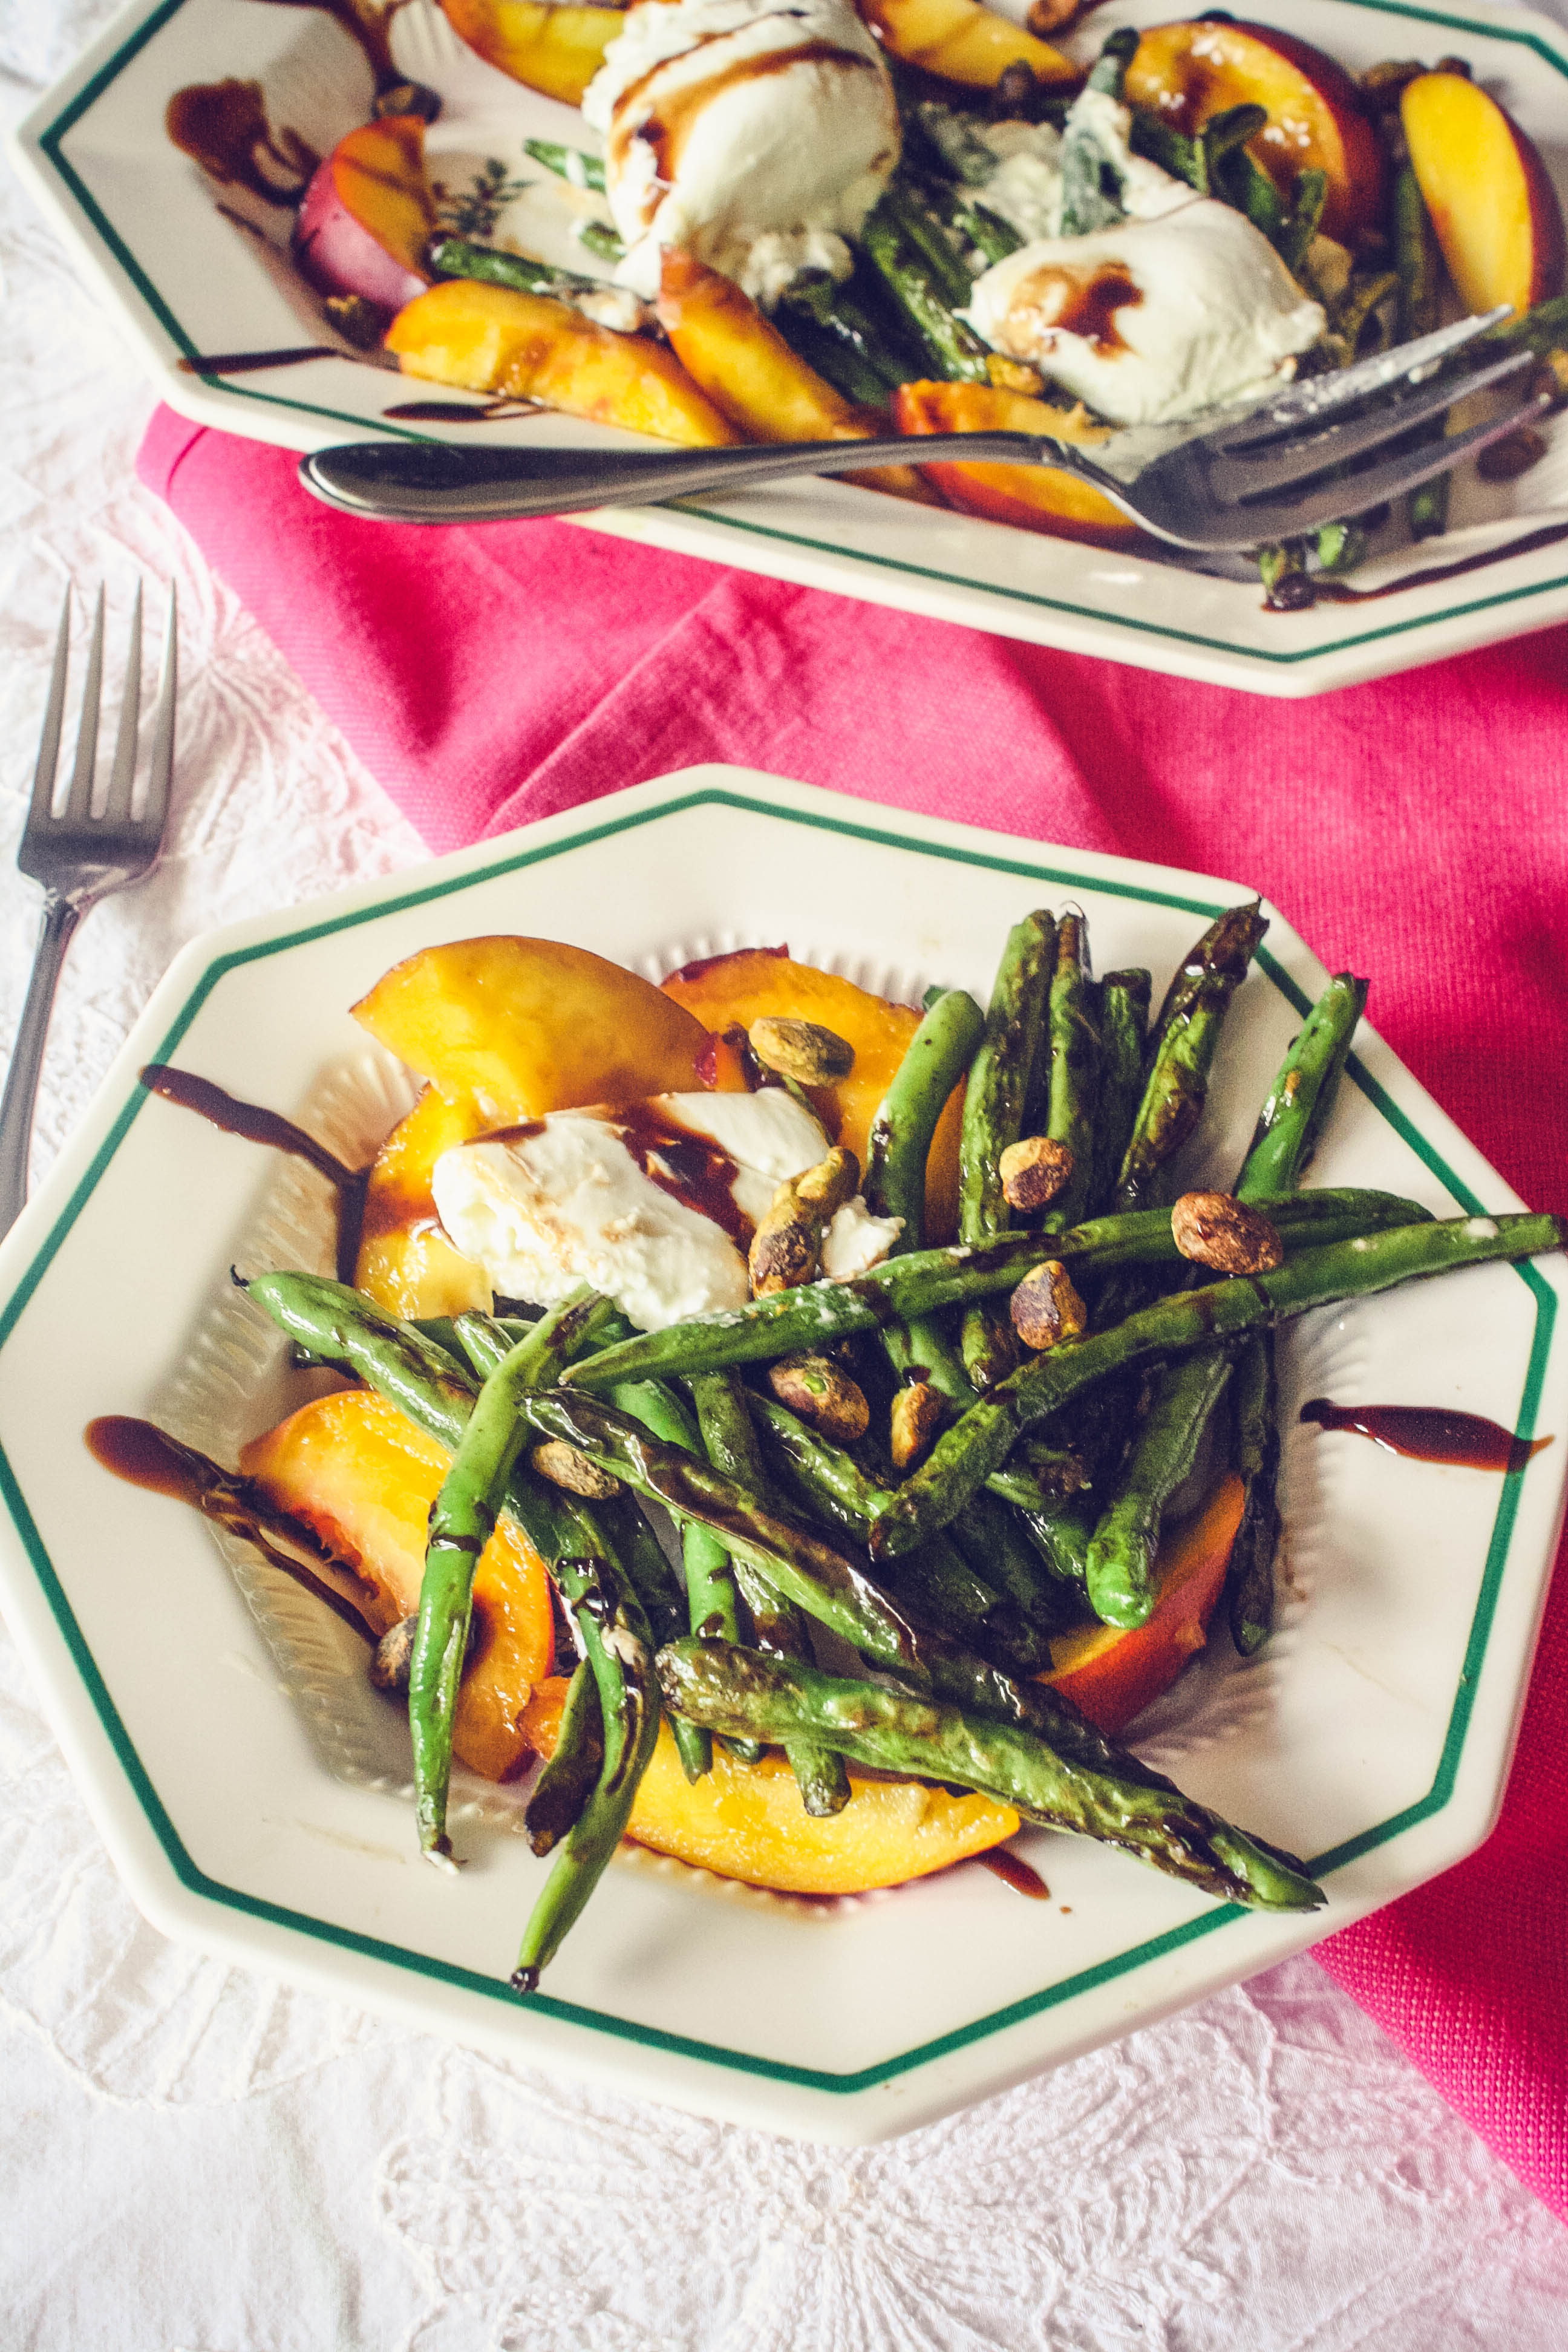 Charred Green Beans with Burrata and Peaches is a delightful summer dish. Charred Green Beans with Burrata and Peaches is perfect for the summer salad season!